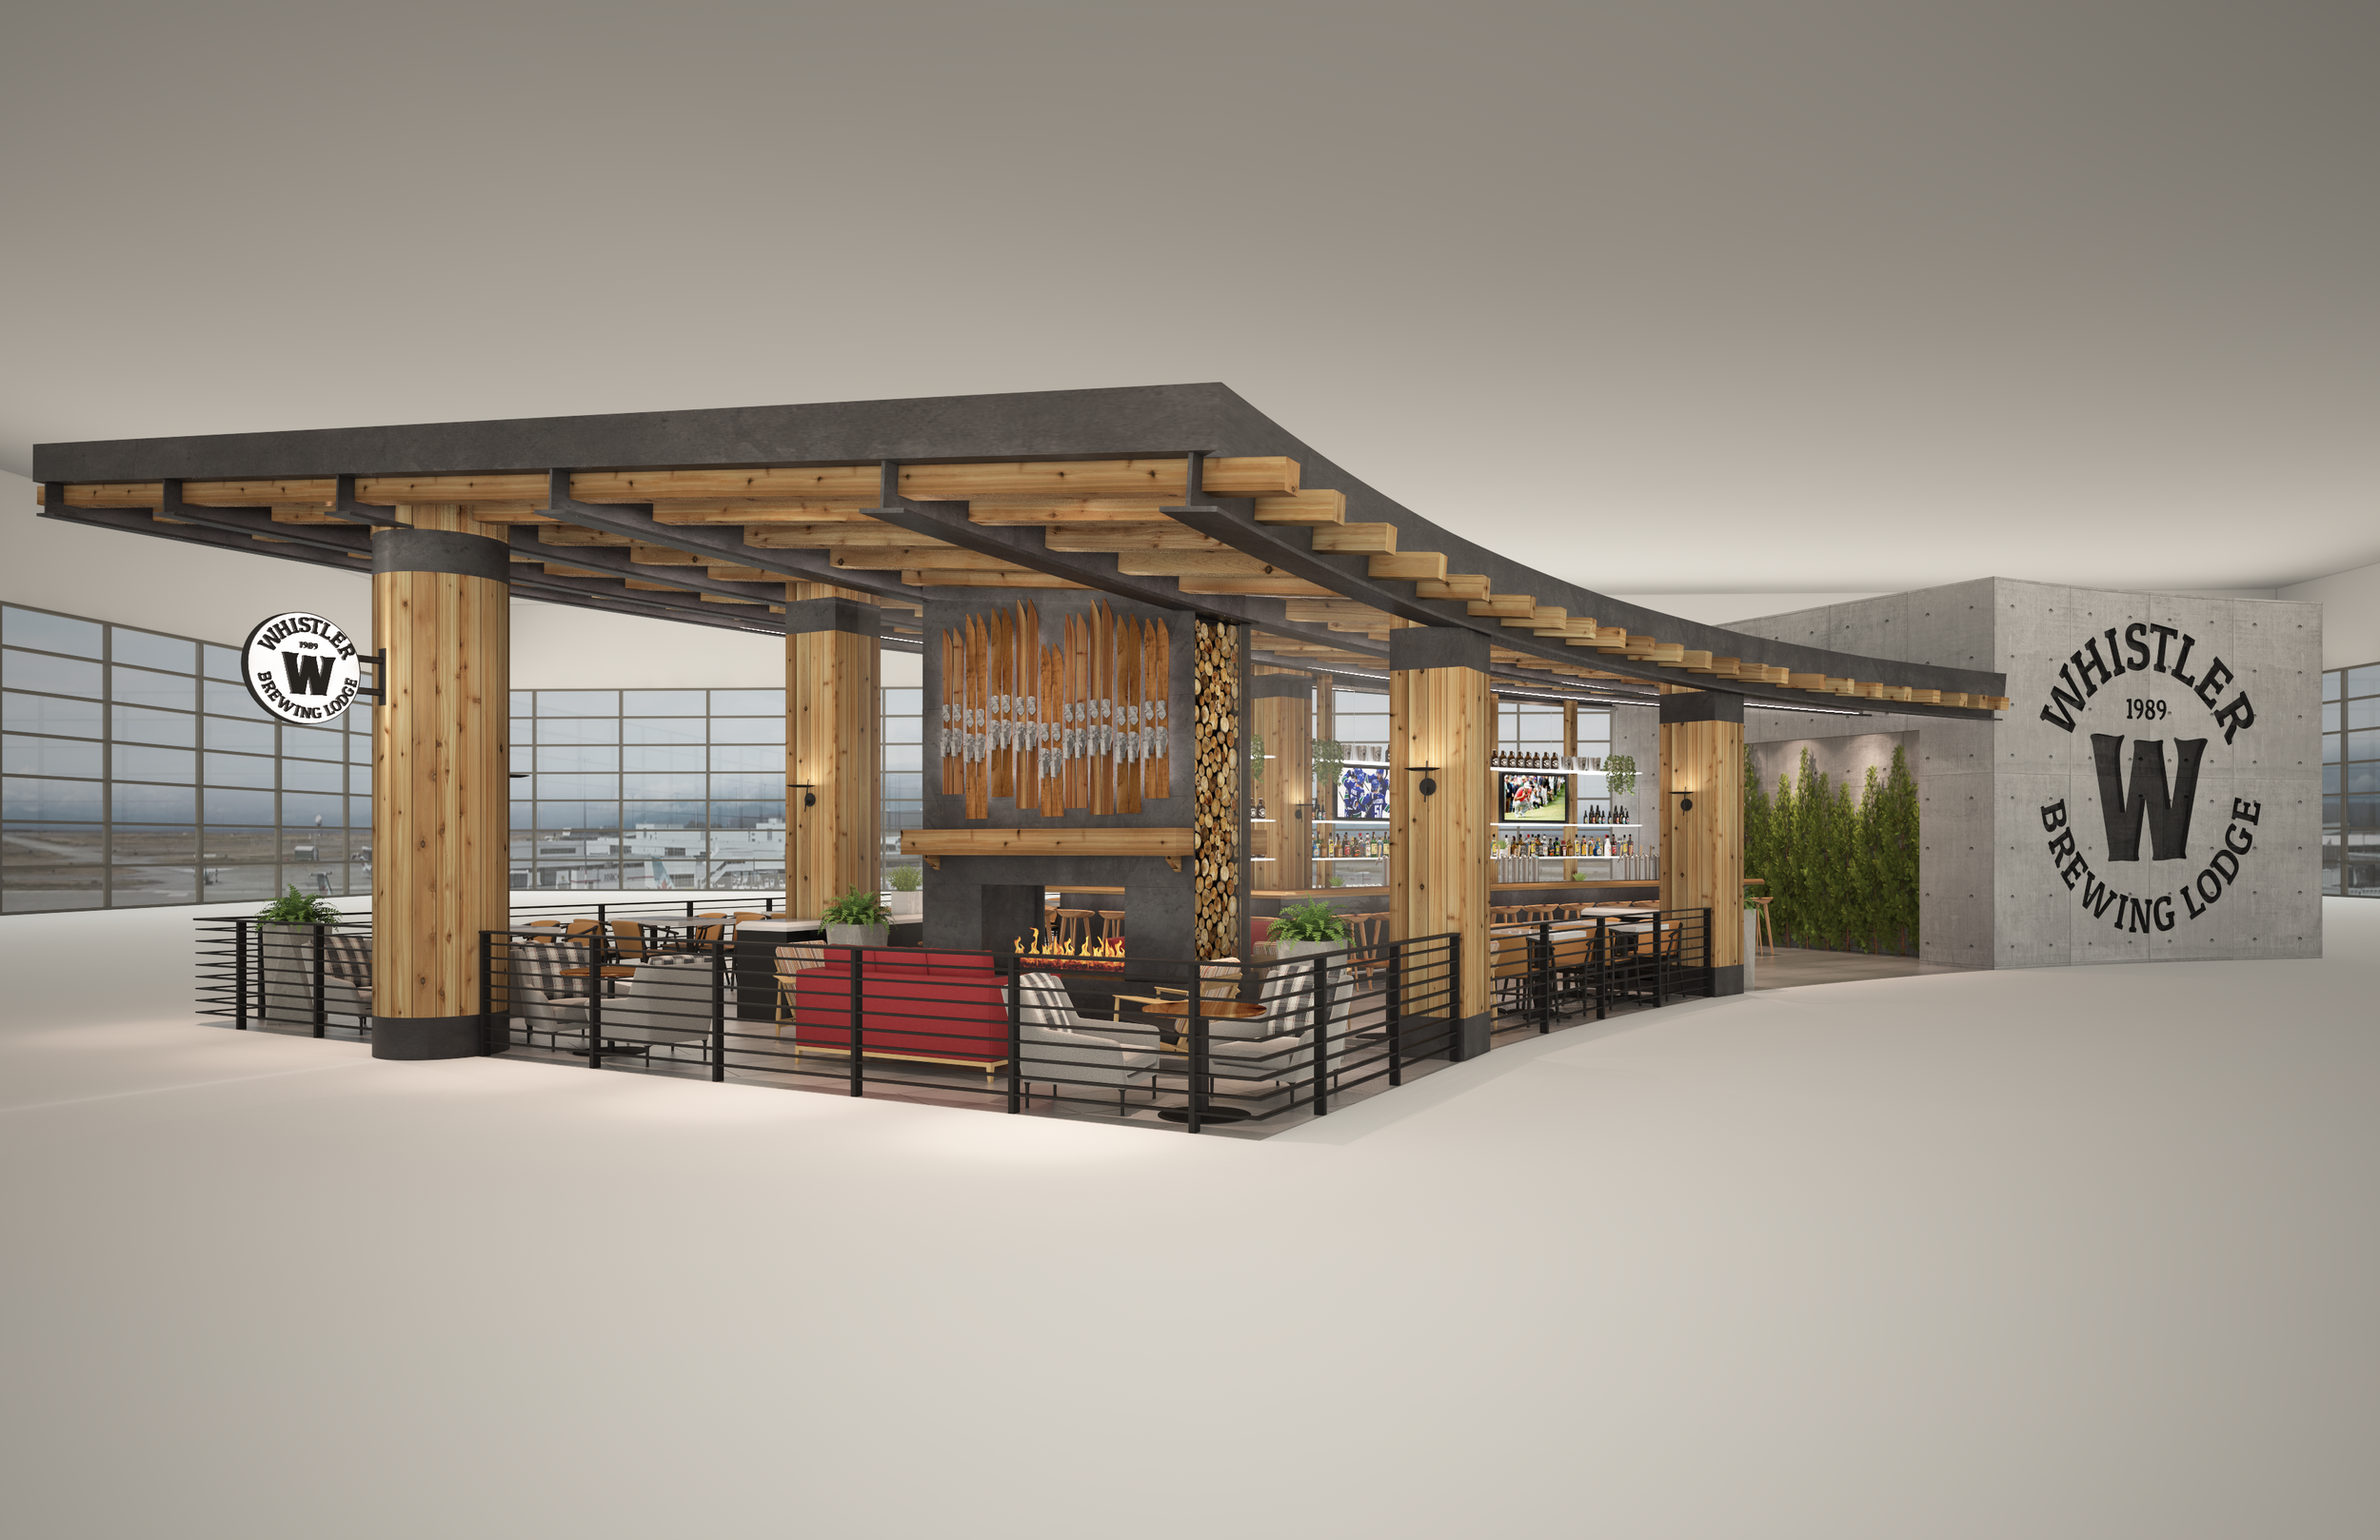 Whistler Brewing Lodge - Vancouver International Airport